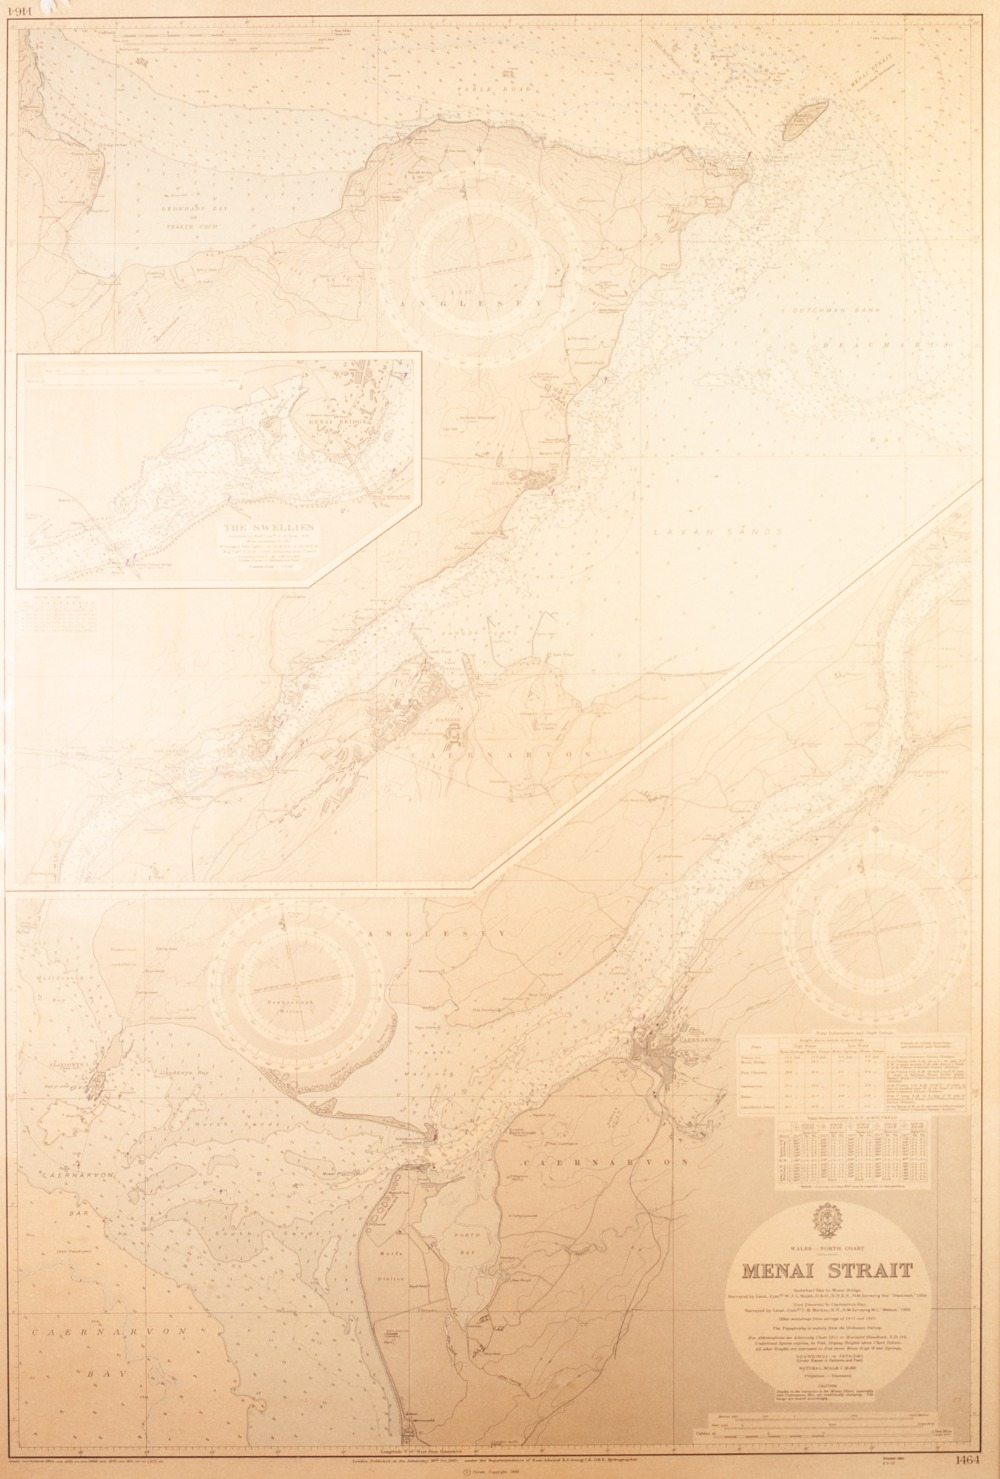 Lot 153 - LARGE MAP OF THE MENAI STRAIT PUBLISHED AT THE ADMIRALTY, 1963 Including a vignette of 'THE